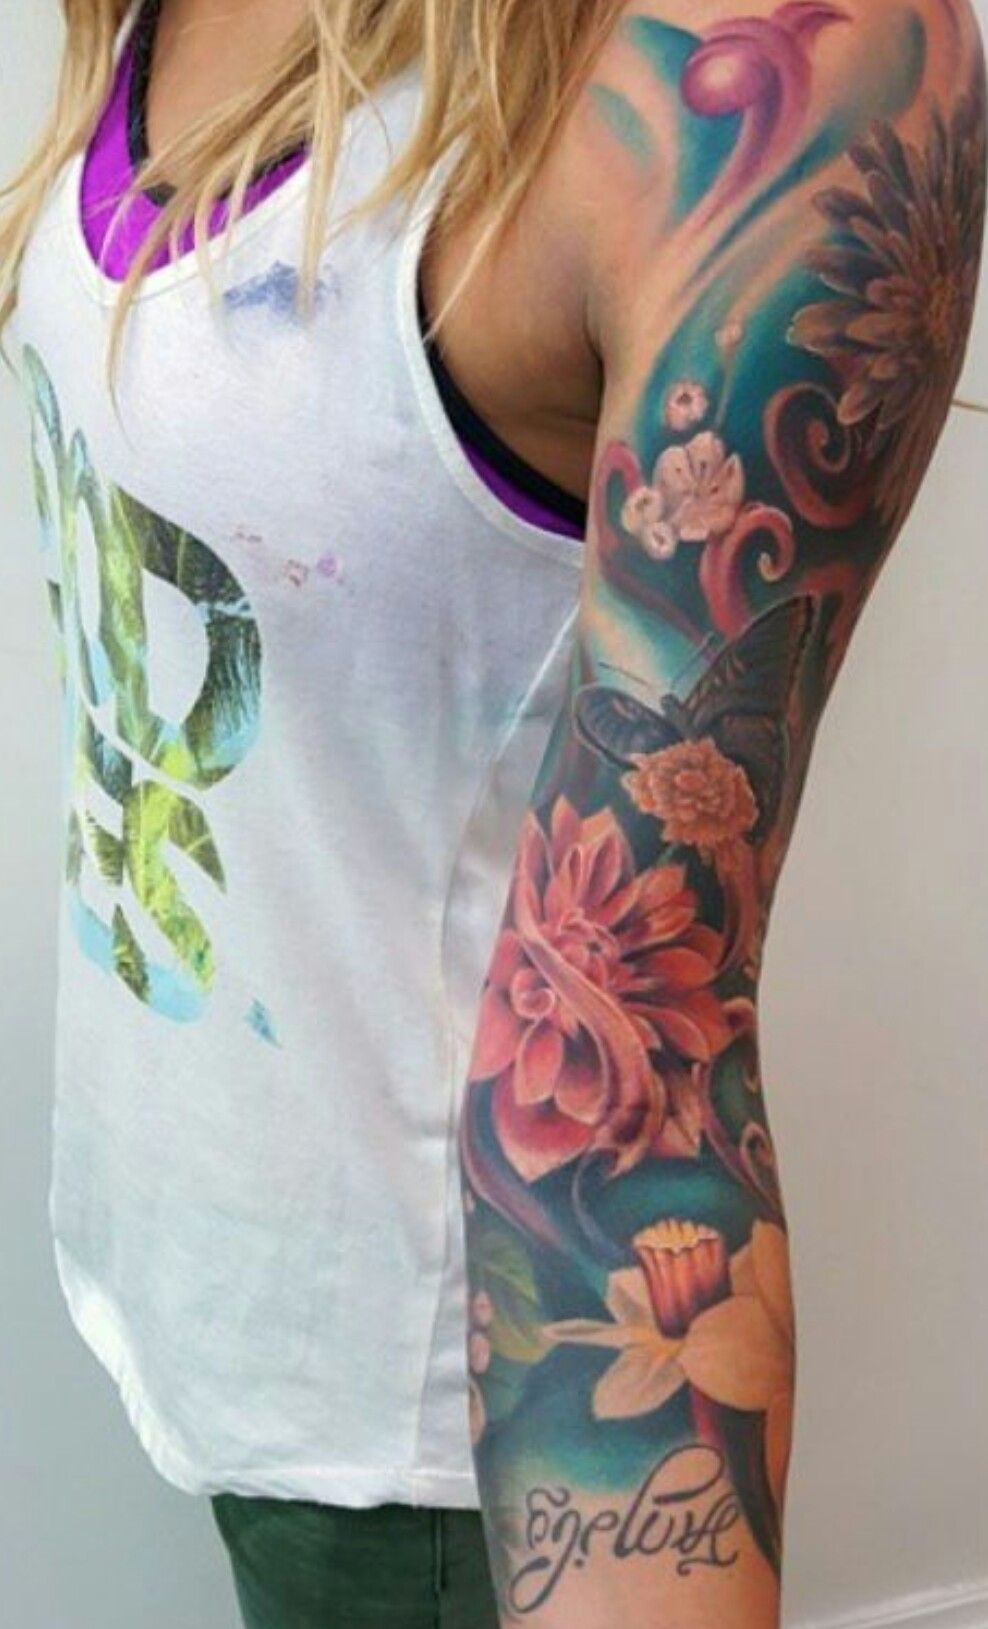 Pin By Samantha Morgan On Tattoos Girls With Sleeve Tattoos Beautiful Tattoos For Women Arm Tattoos For Women